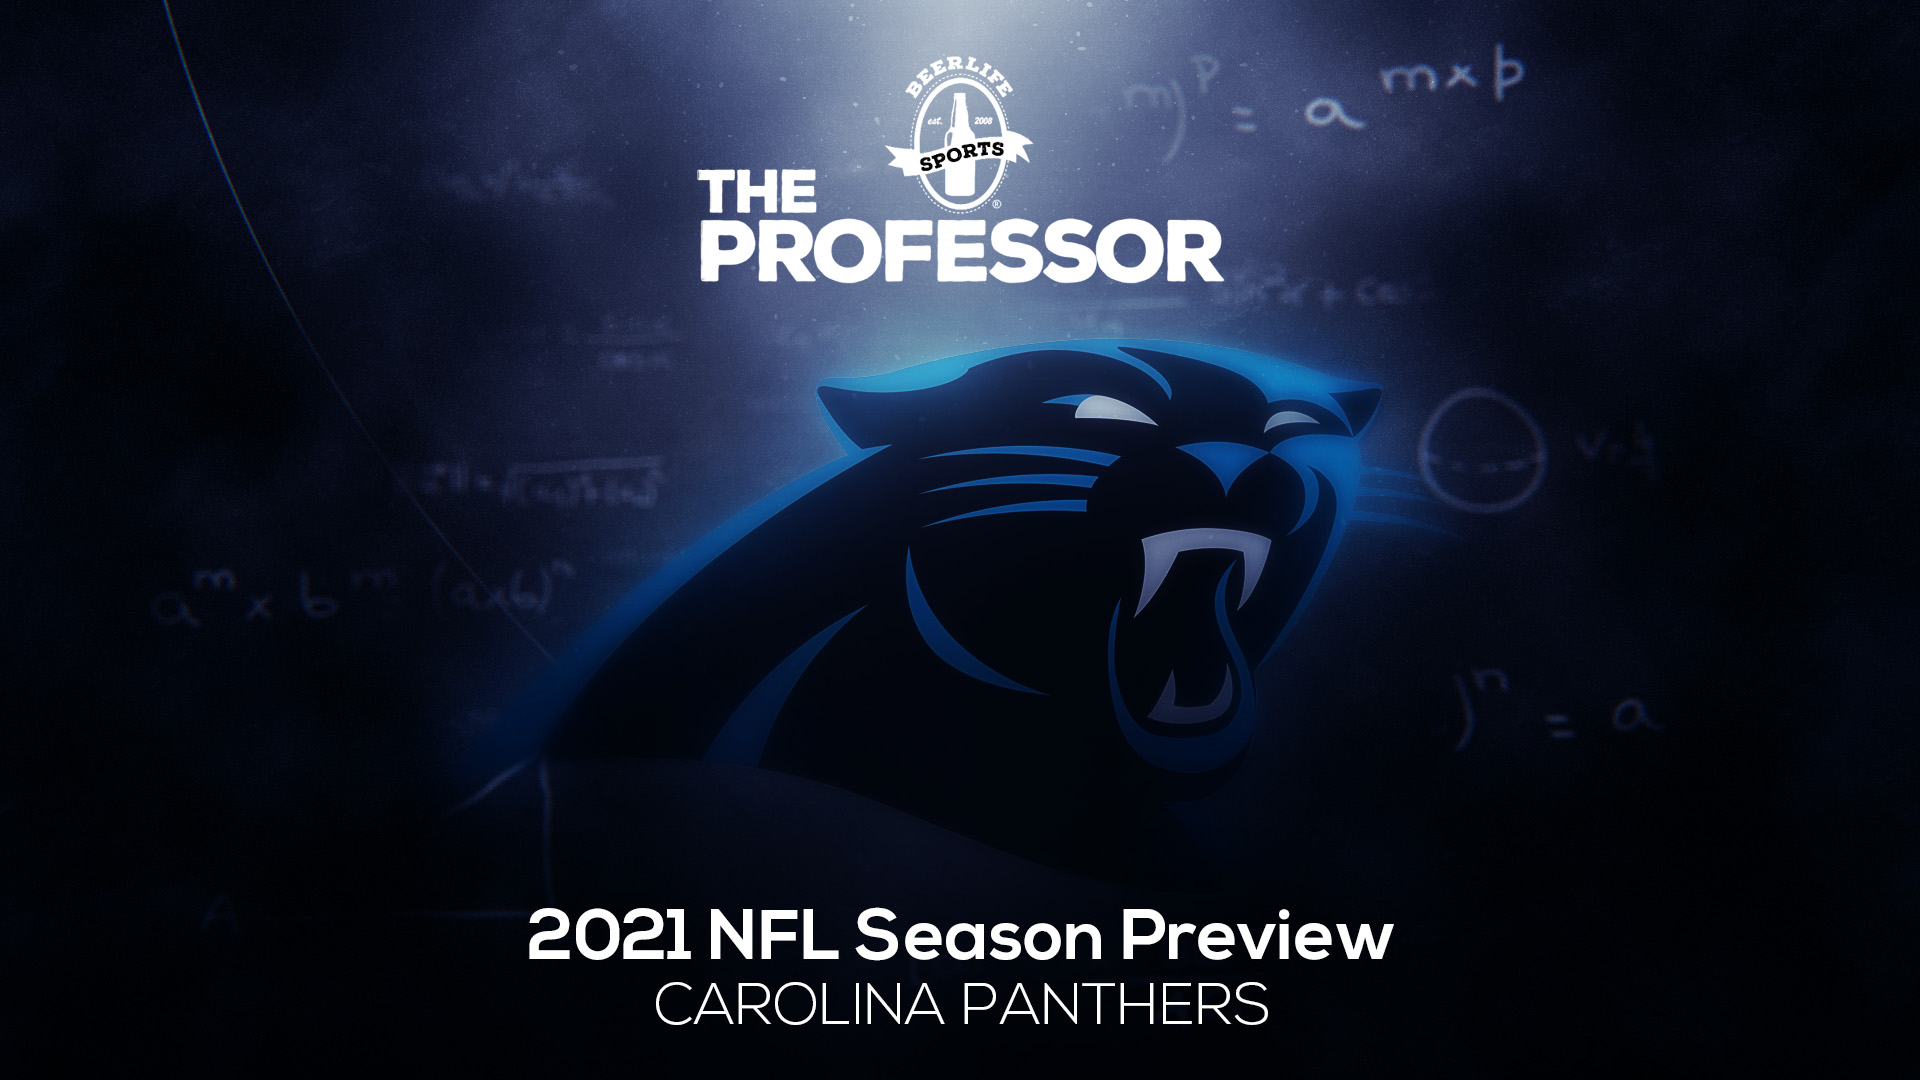 TheProfessor_NFL preview-panthers